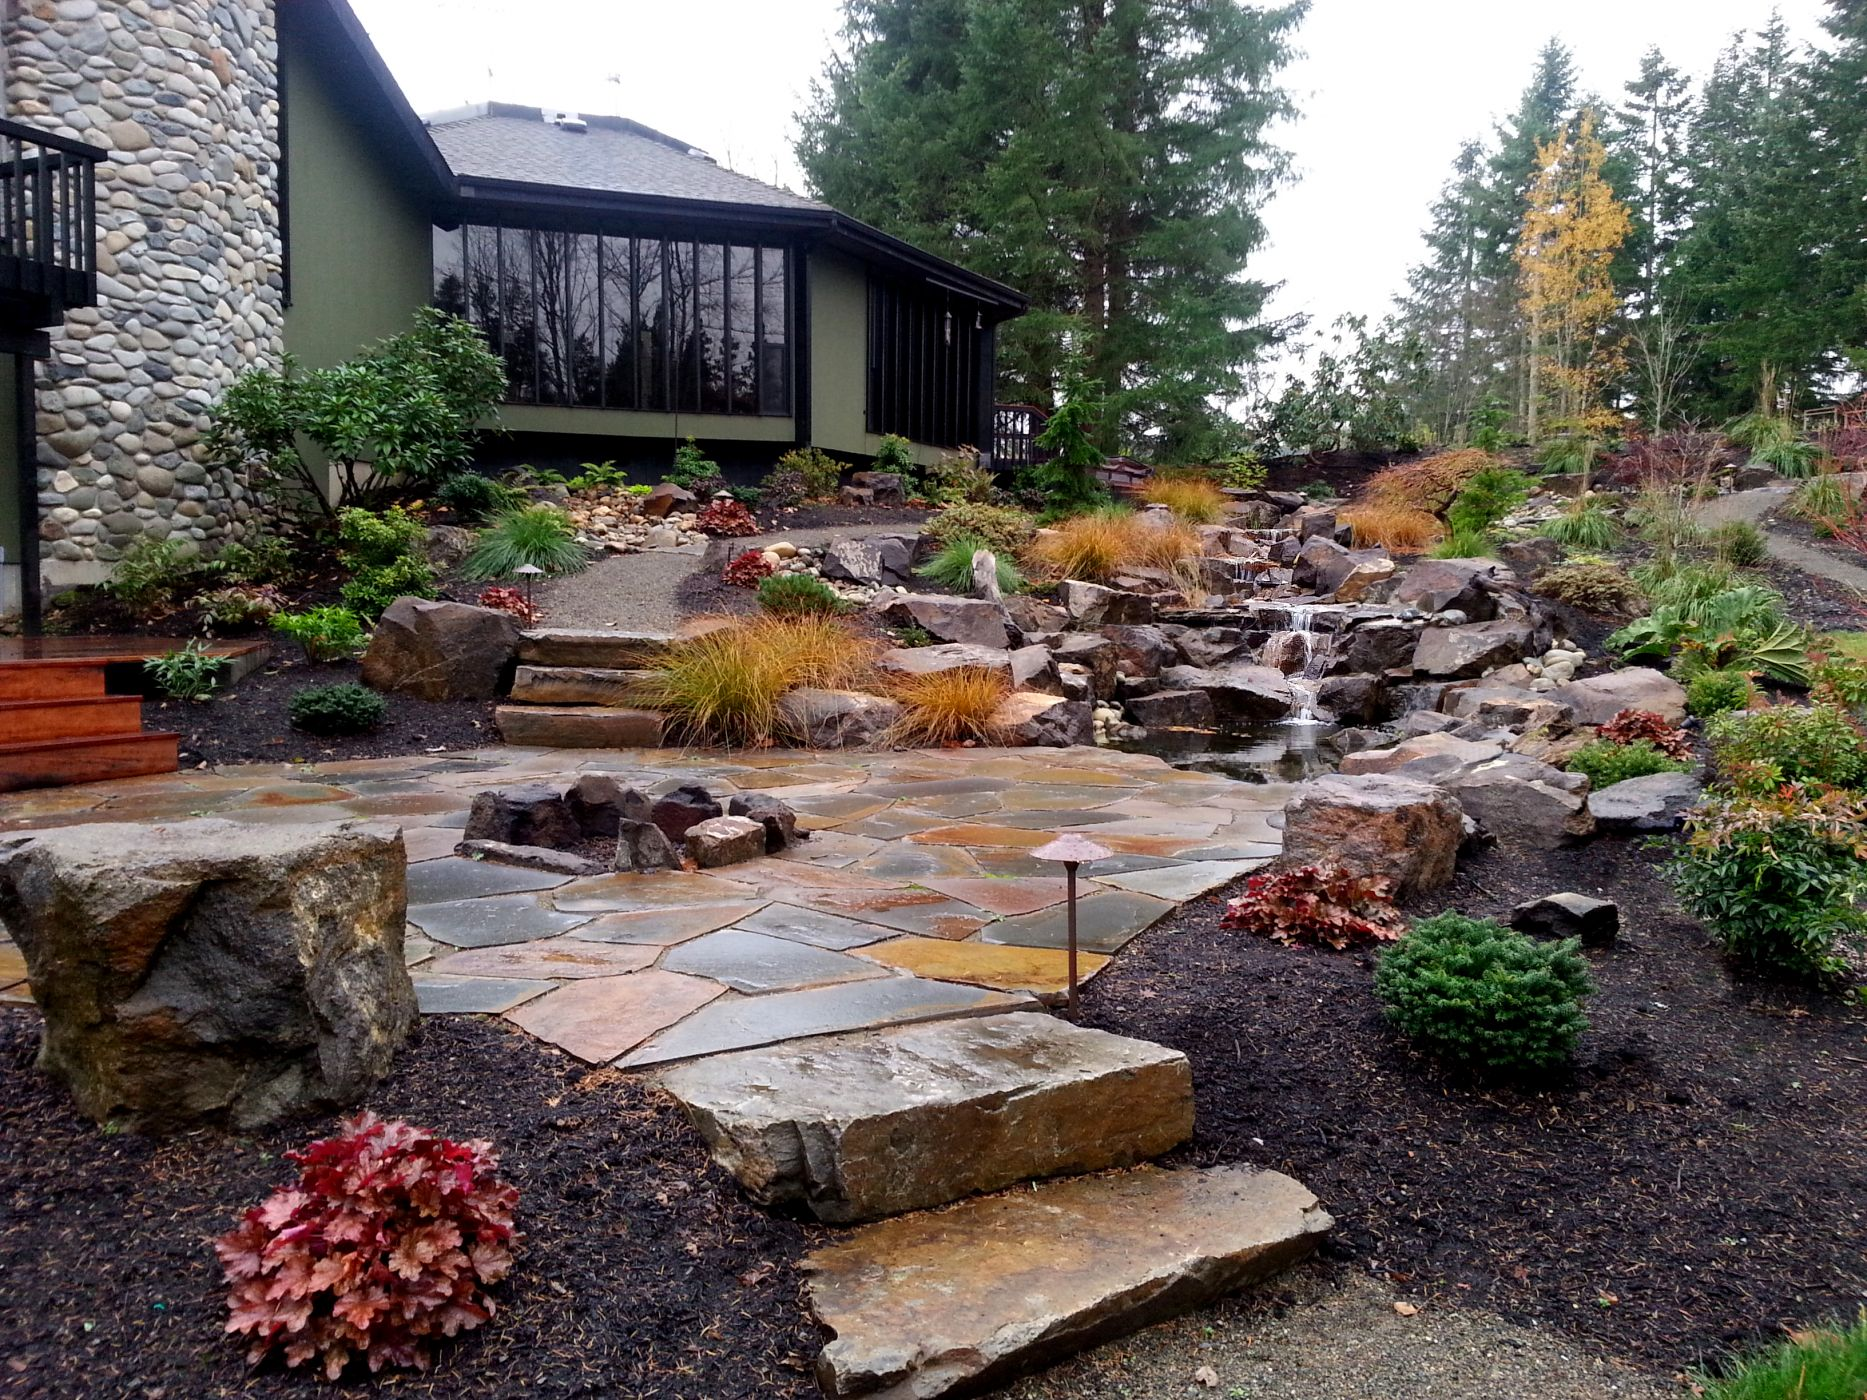 Superior Sand Set Montana Flagstone Patio. Snohomish, WA U2013 Sublime Garden Design